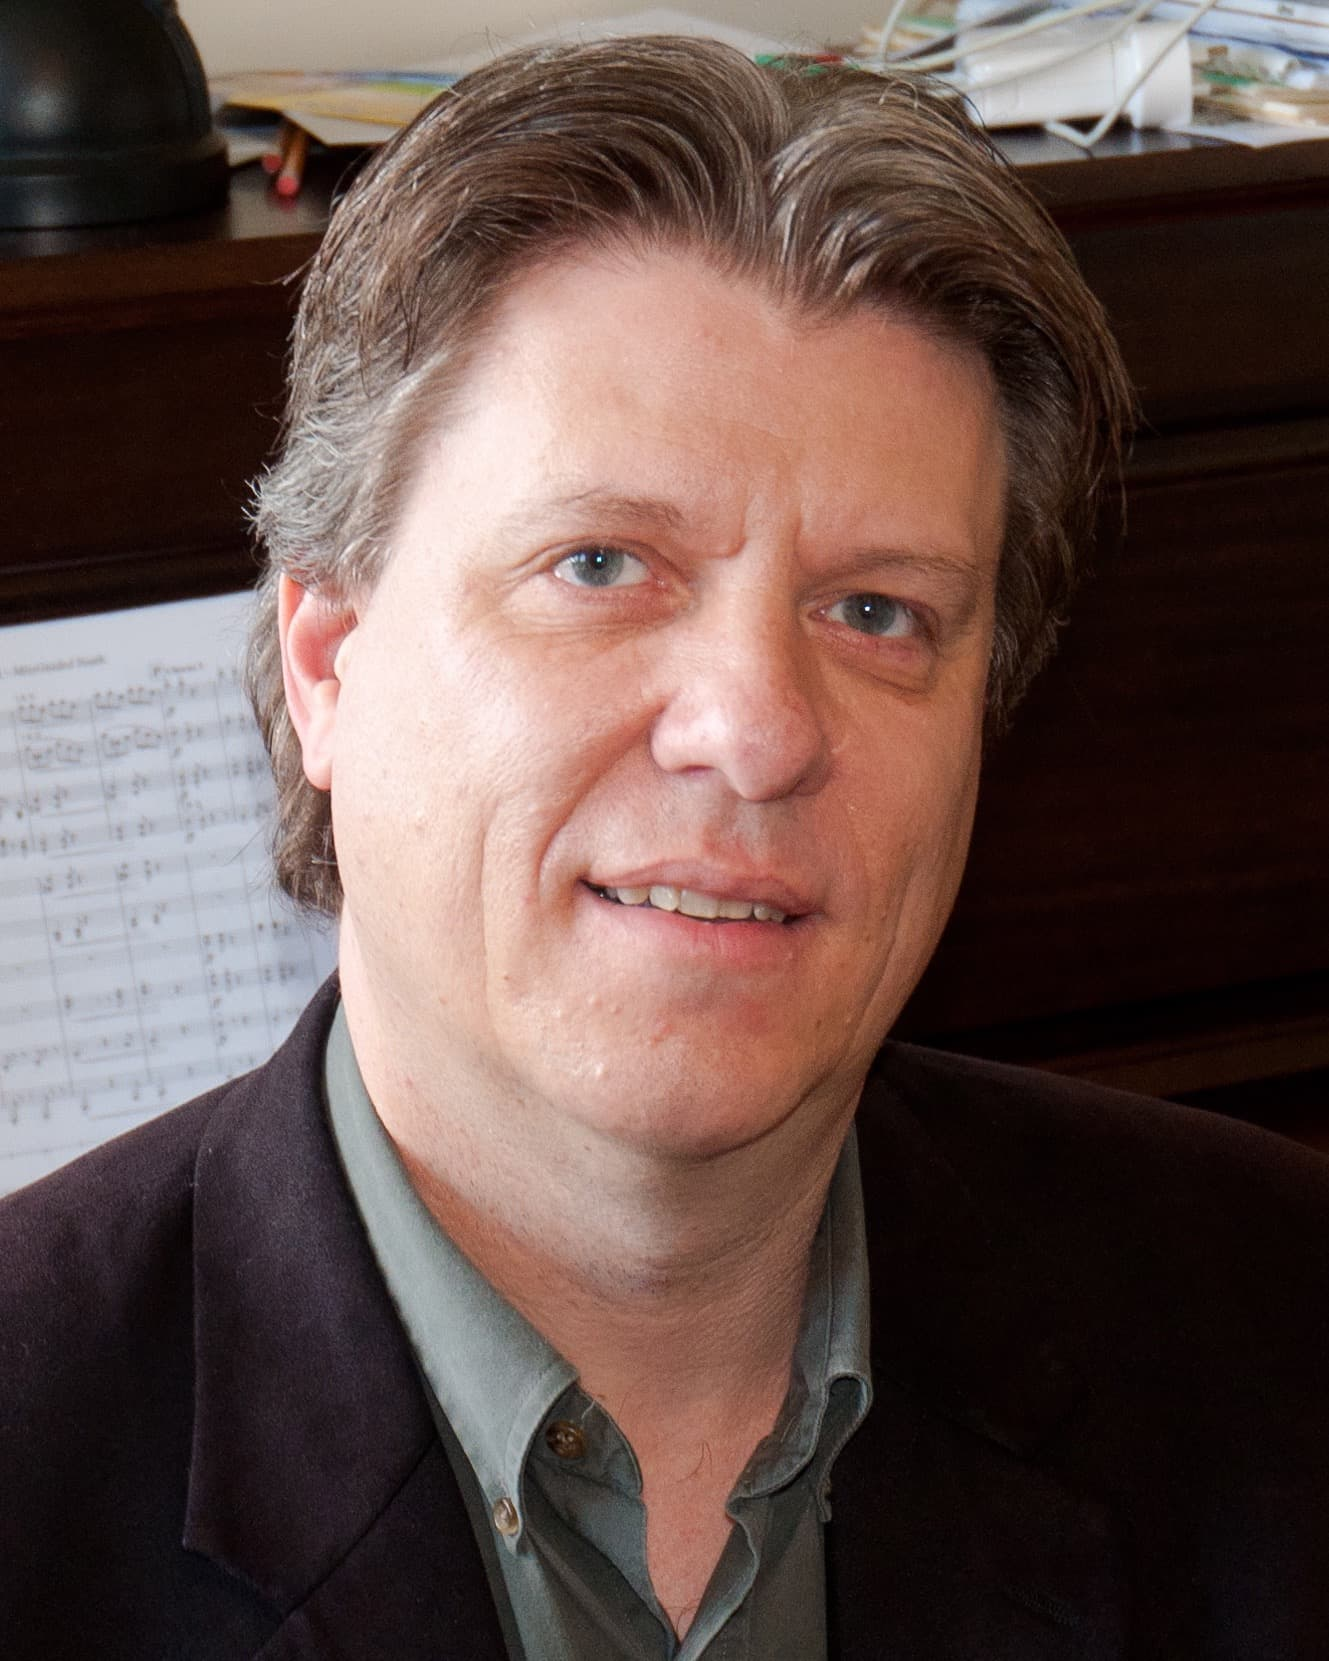 Composer and orchestrator Thomas Goss